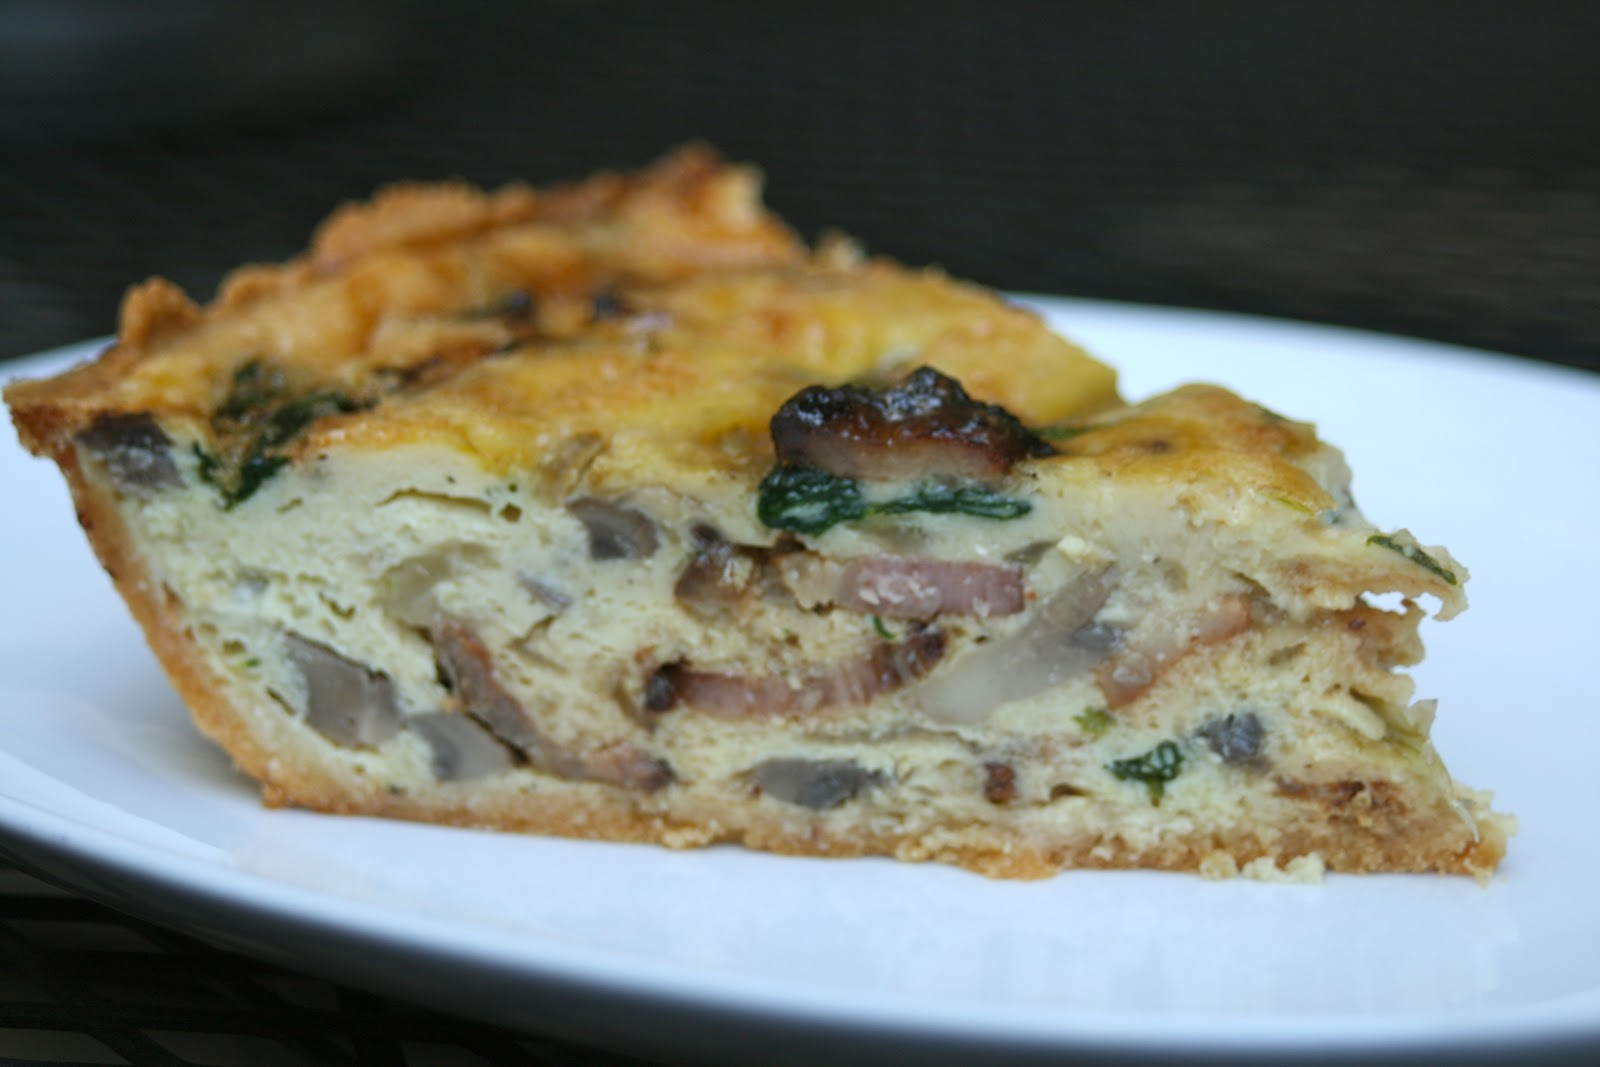 CupcakesOMG!: Bacon Quiche with Paleo Almond Flour Crust